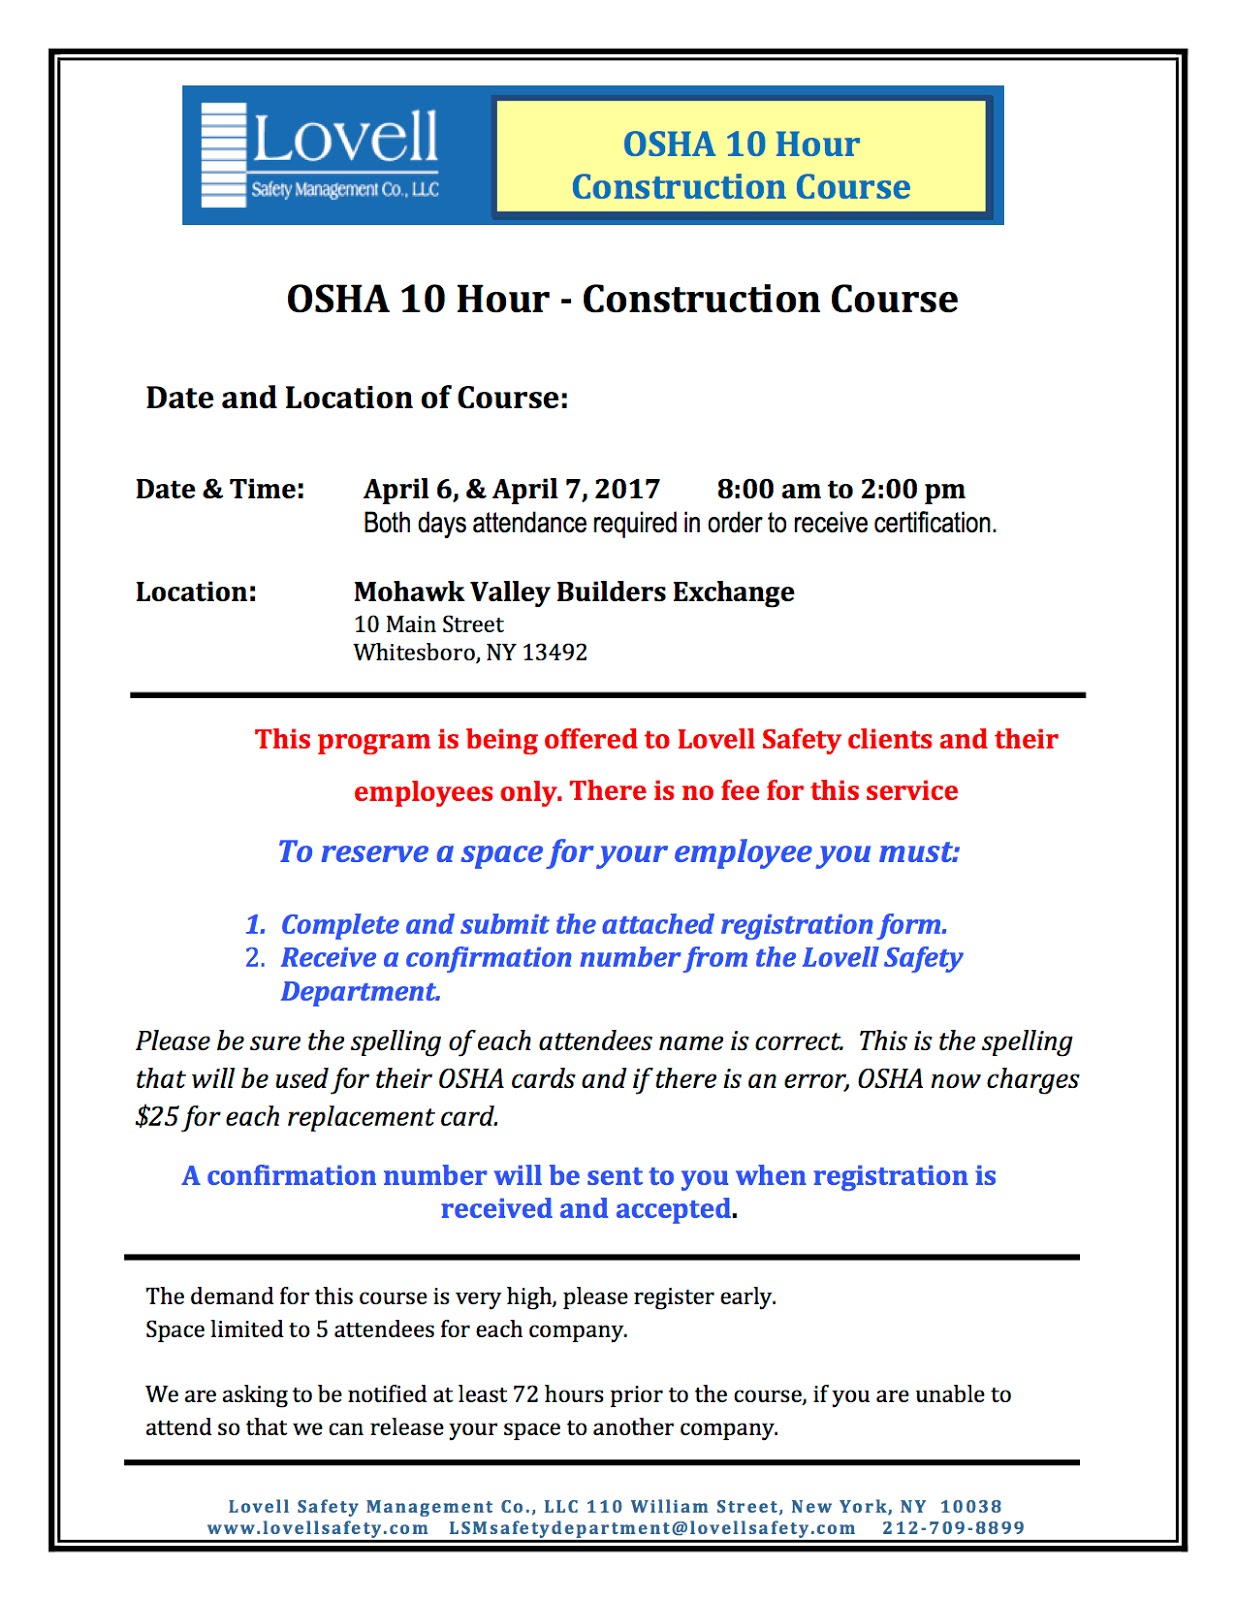 Safety pays 2017 the course is provided by our osha certified instructors each employee who successfully completes the program will receive a certification card from osha 1betcityfo Images